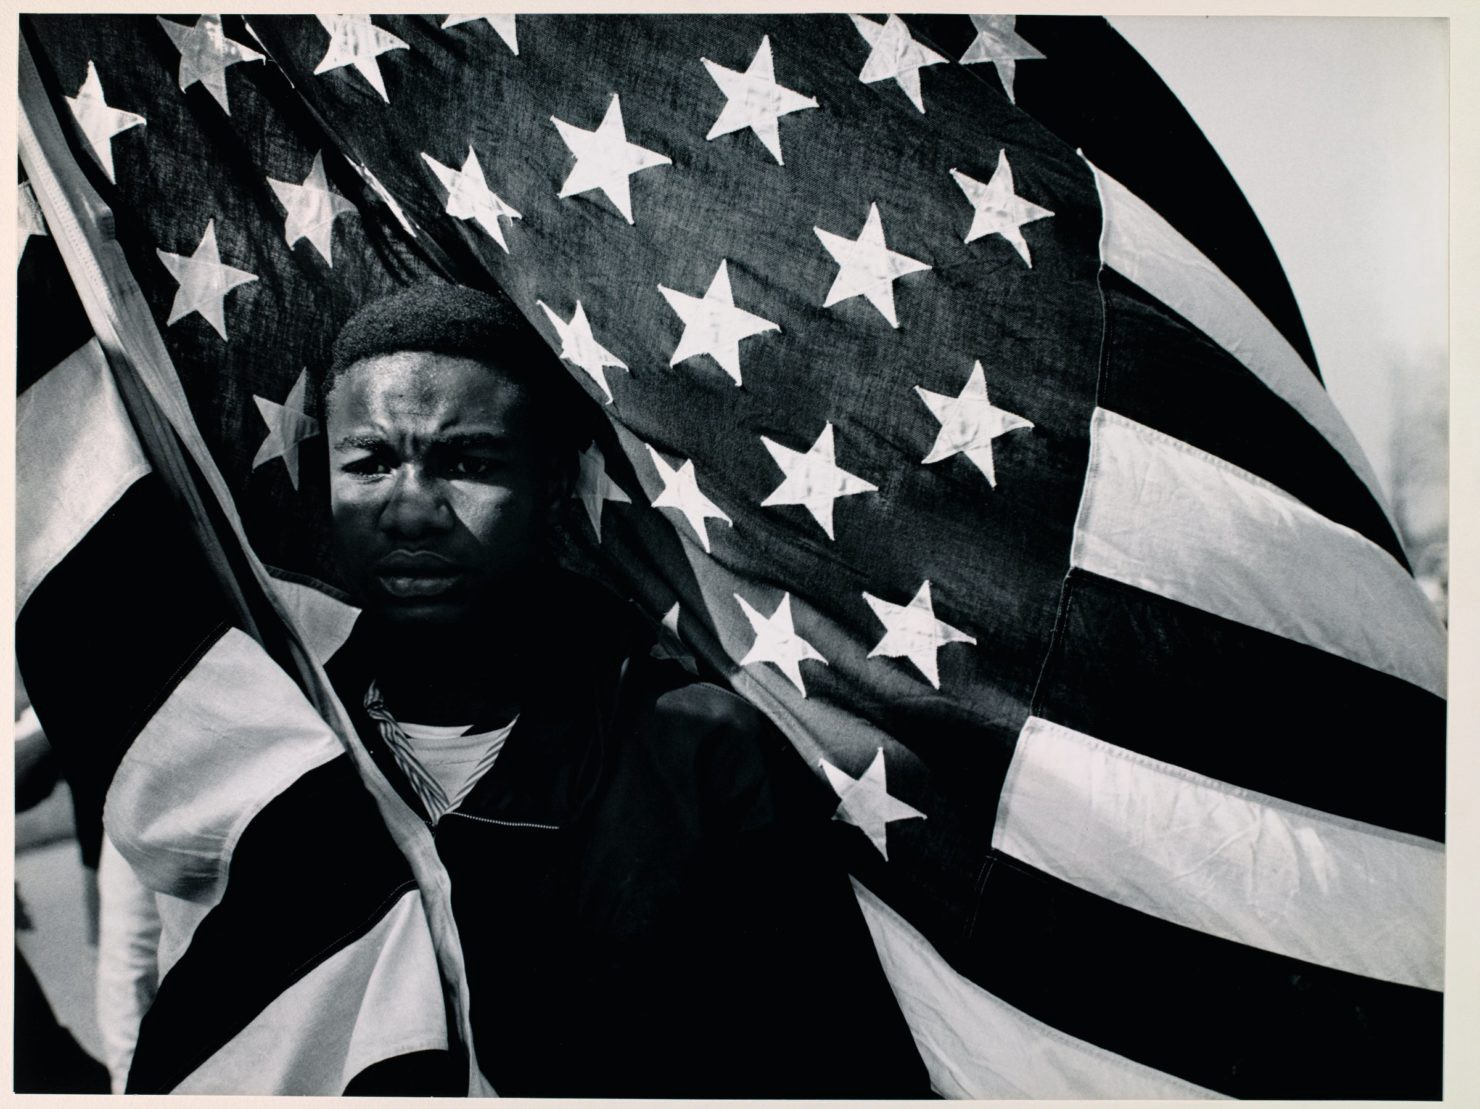 A black teenaged boy stands enwrapped in the American flag, wearing a very emotional expression on his face.